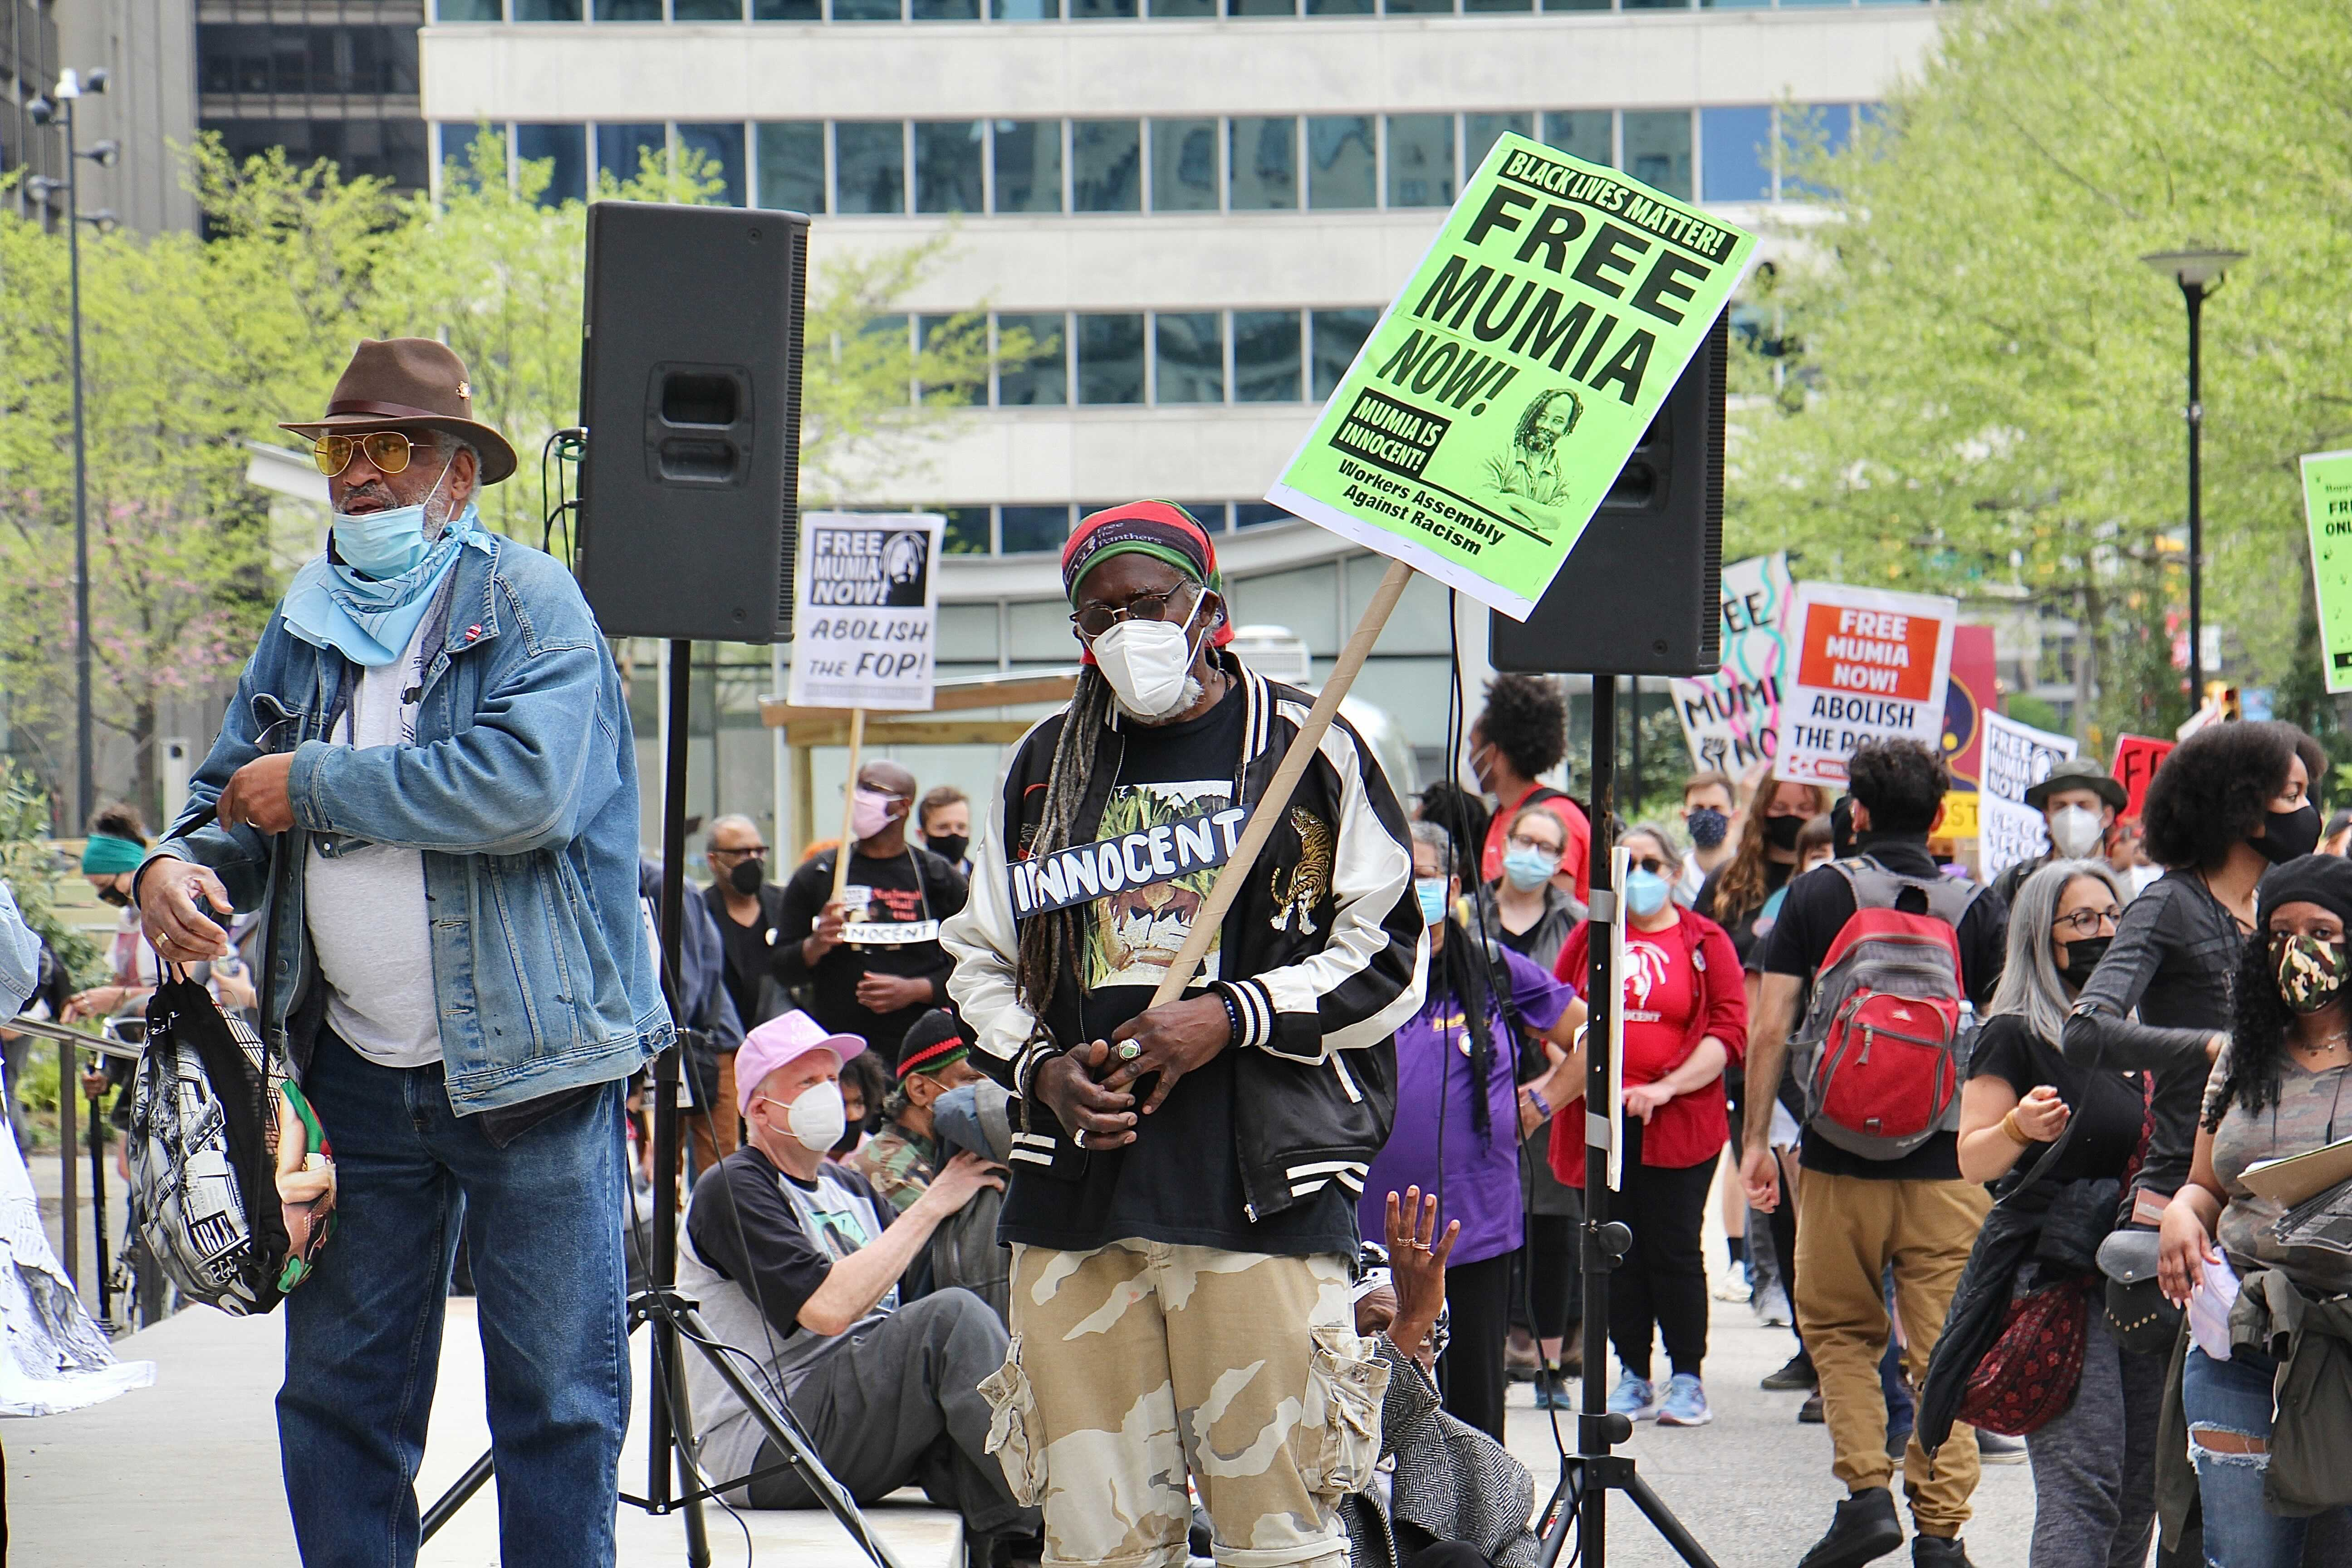 Hundreds gather at City Hall to demand the release of Mumia Abu-Jamal. (Emma Lee/WHYY)